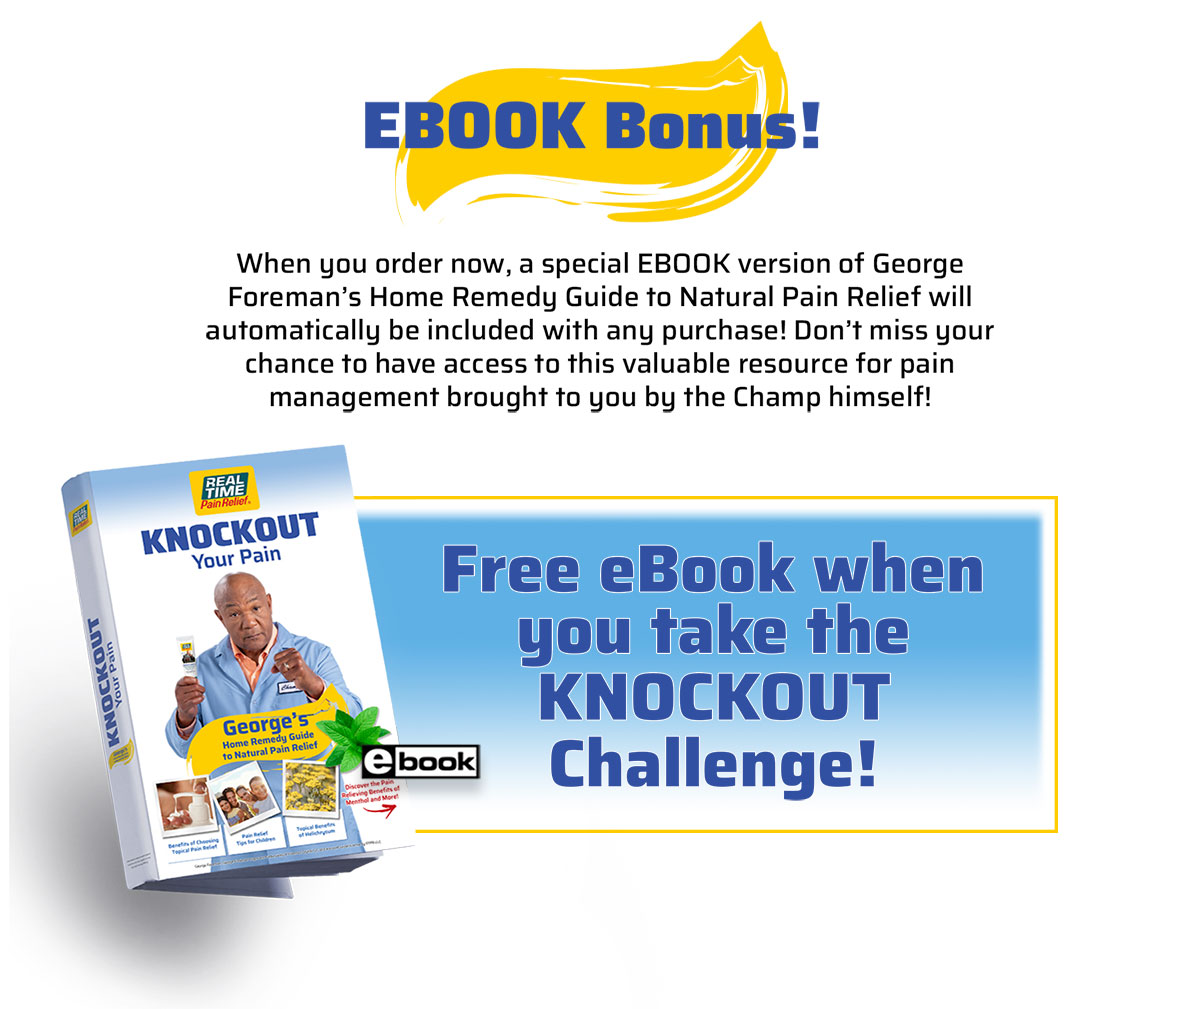 FREE eBook Bonus - When you order now, a special EBOOK version of George Foreman's Home Remedy Guide to Natural Pain Relief will automatically be included with any purchase! Don't miss your chance to have access to this valuable resource for pain management brought to you by the Champ himself!